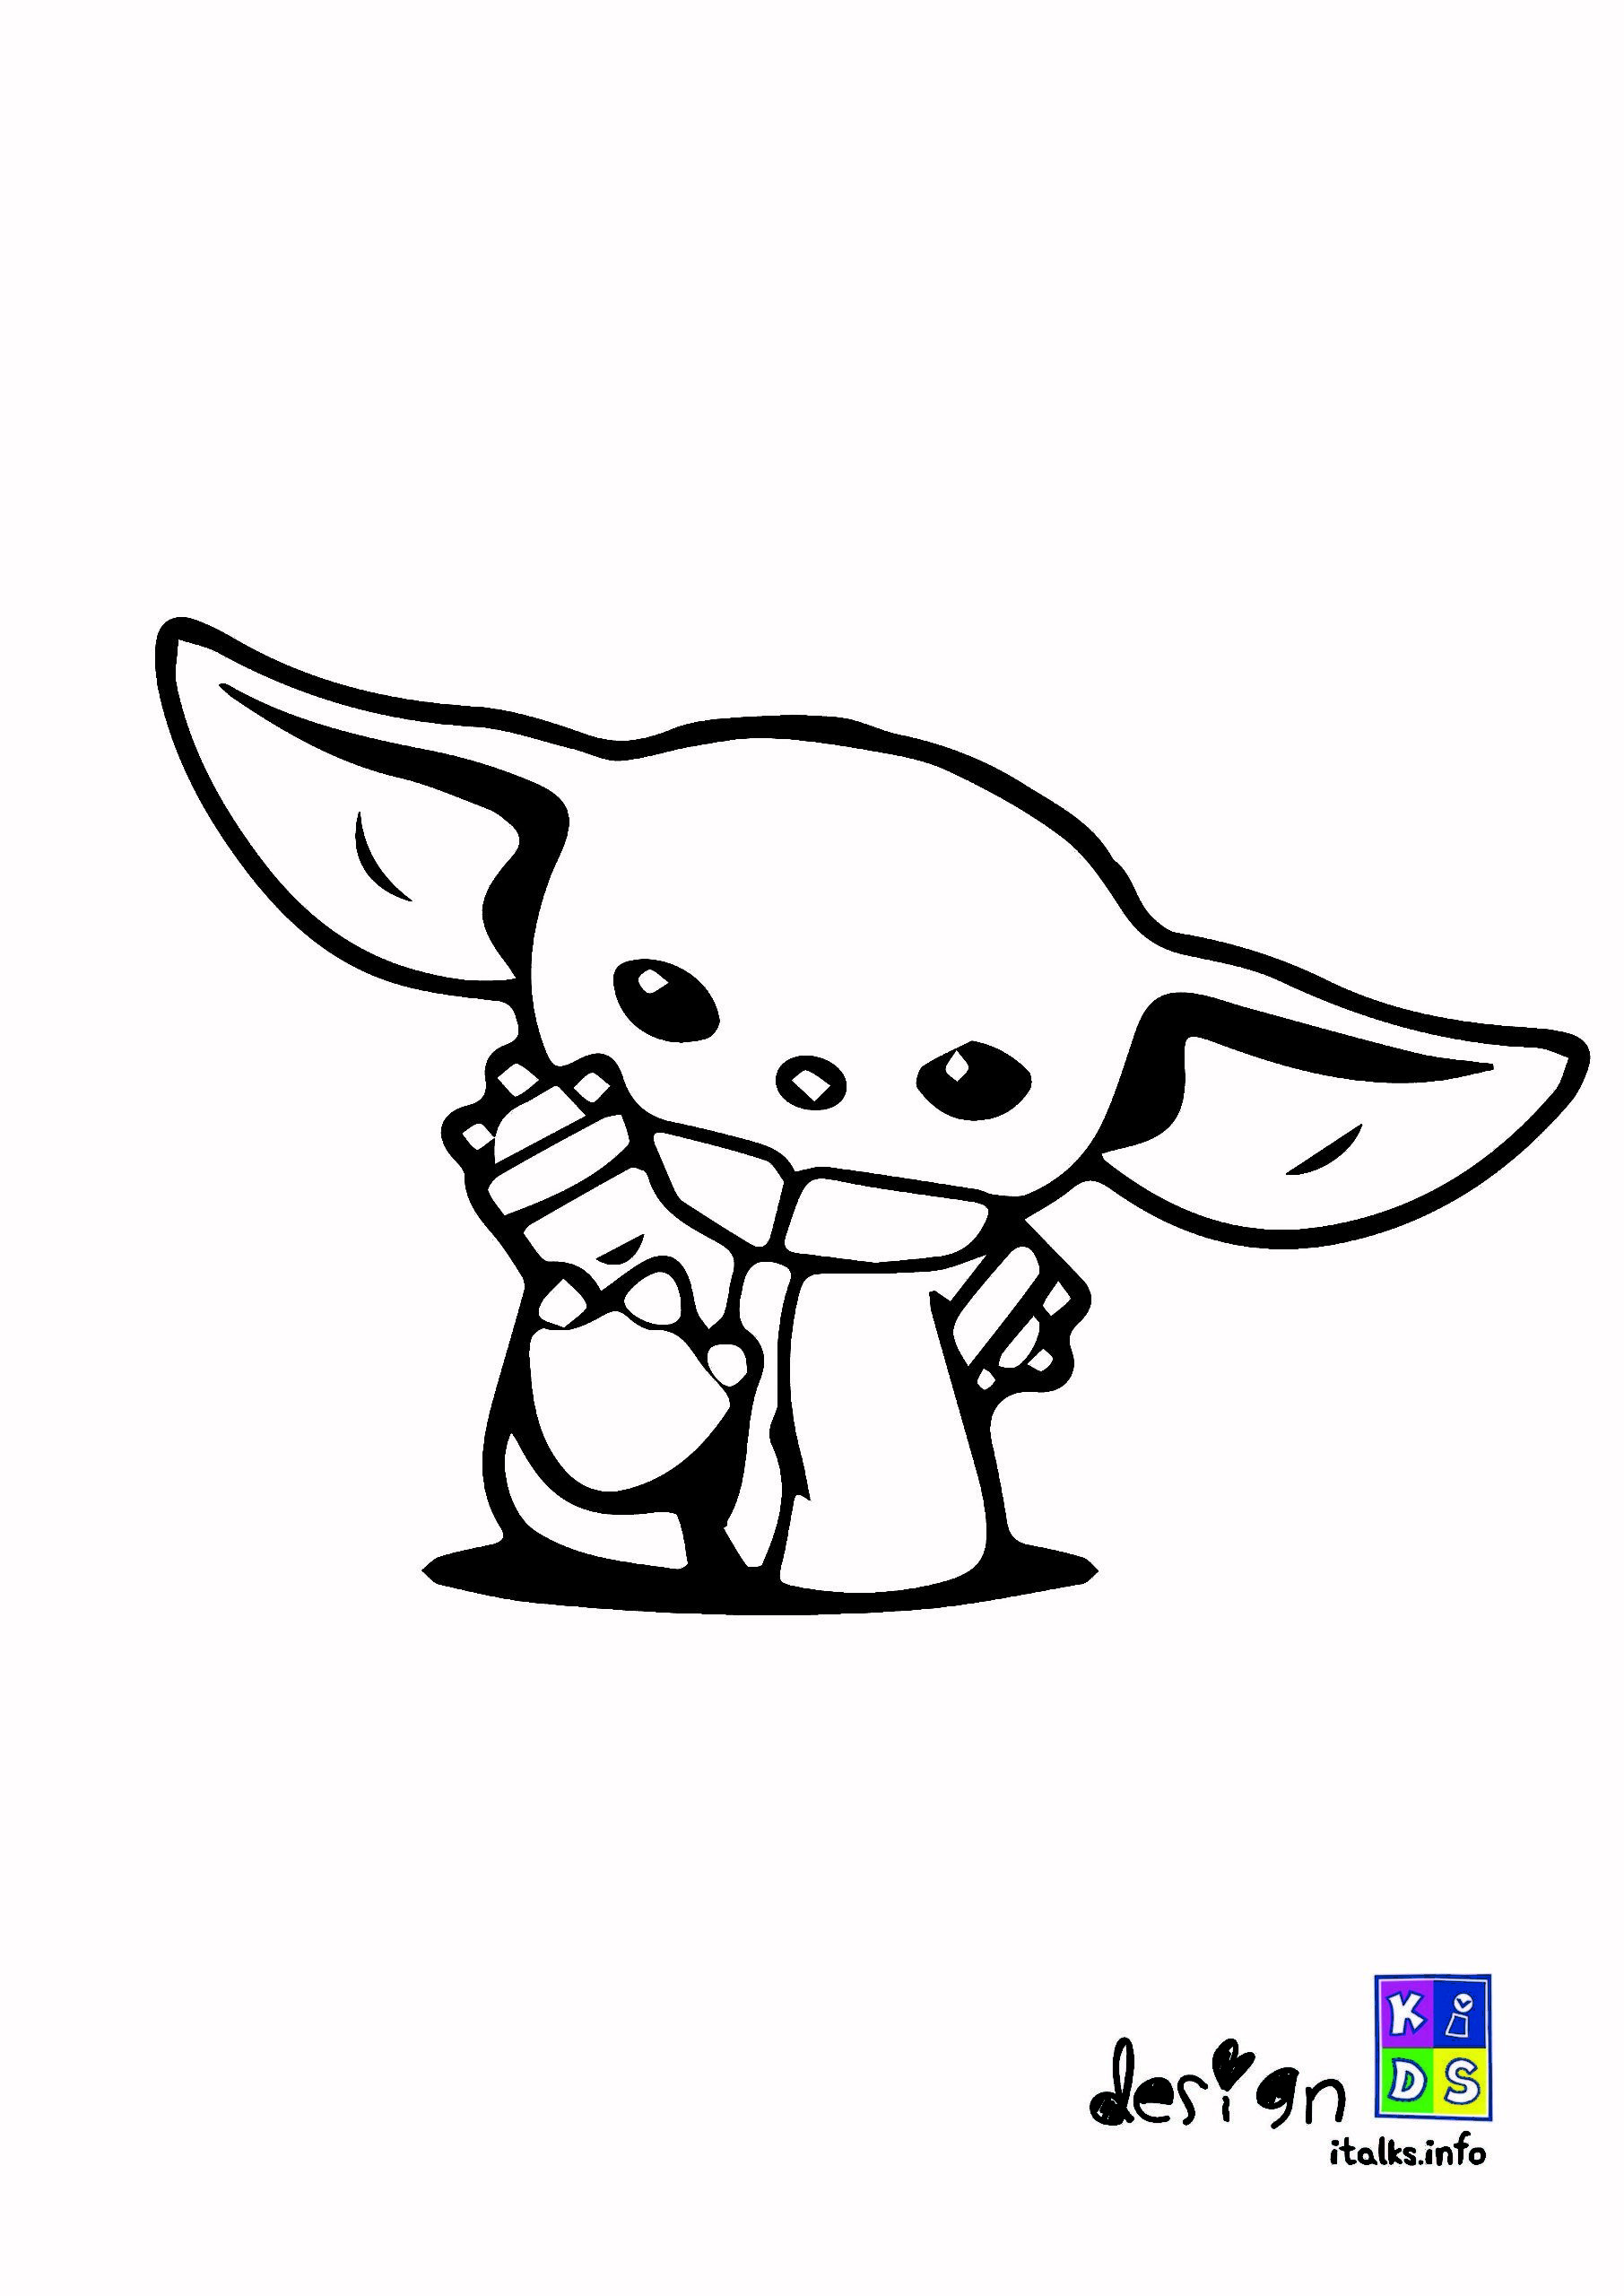 Free Printable Baby Yoda Coloring Pages | 101 Coloring Pages